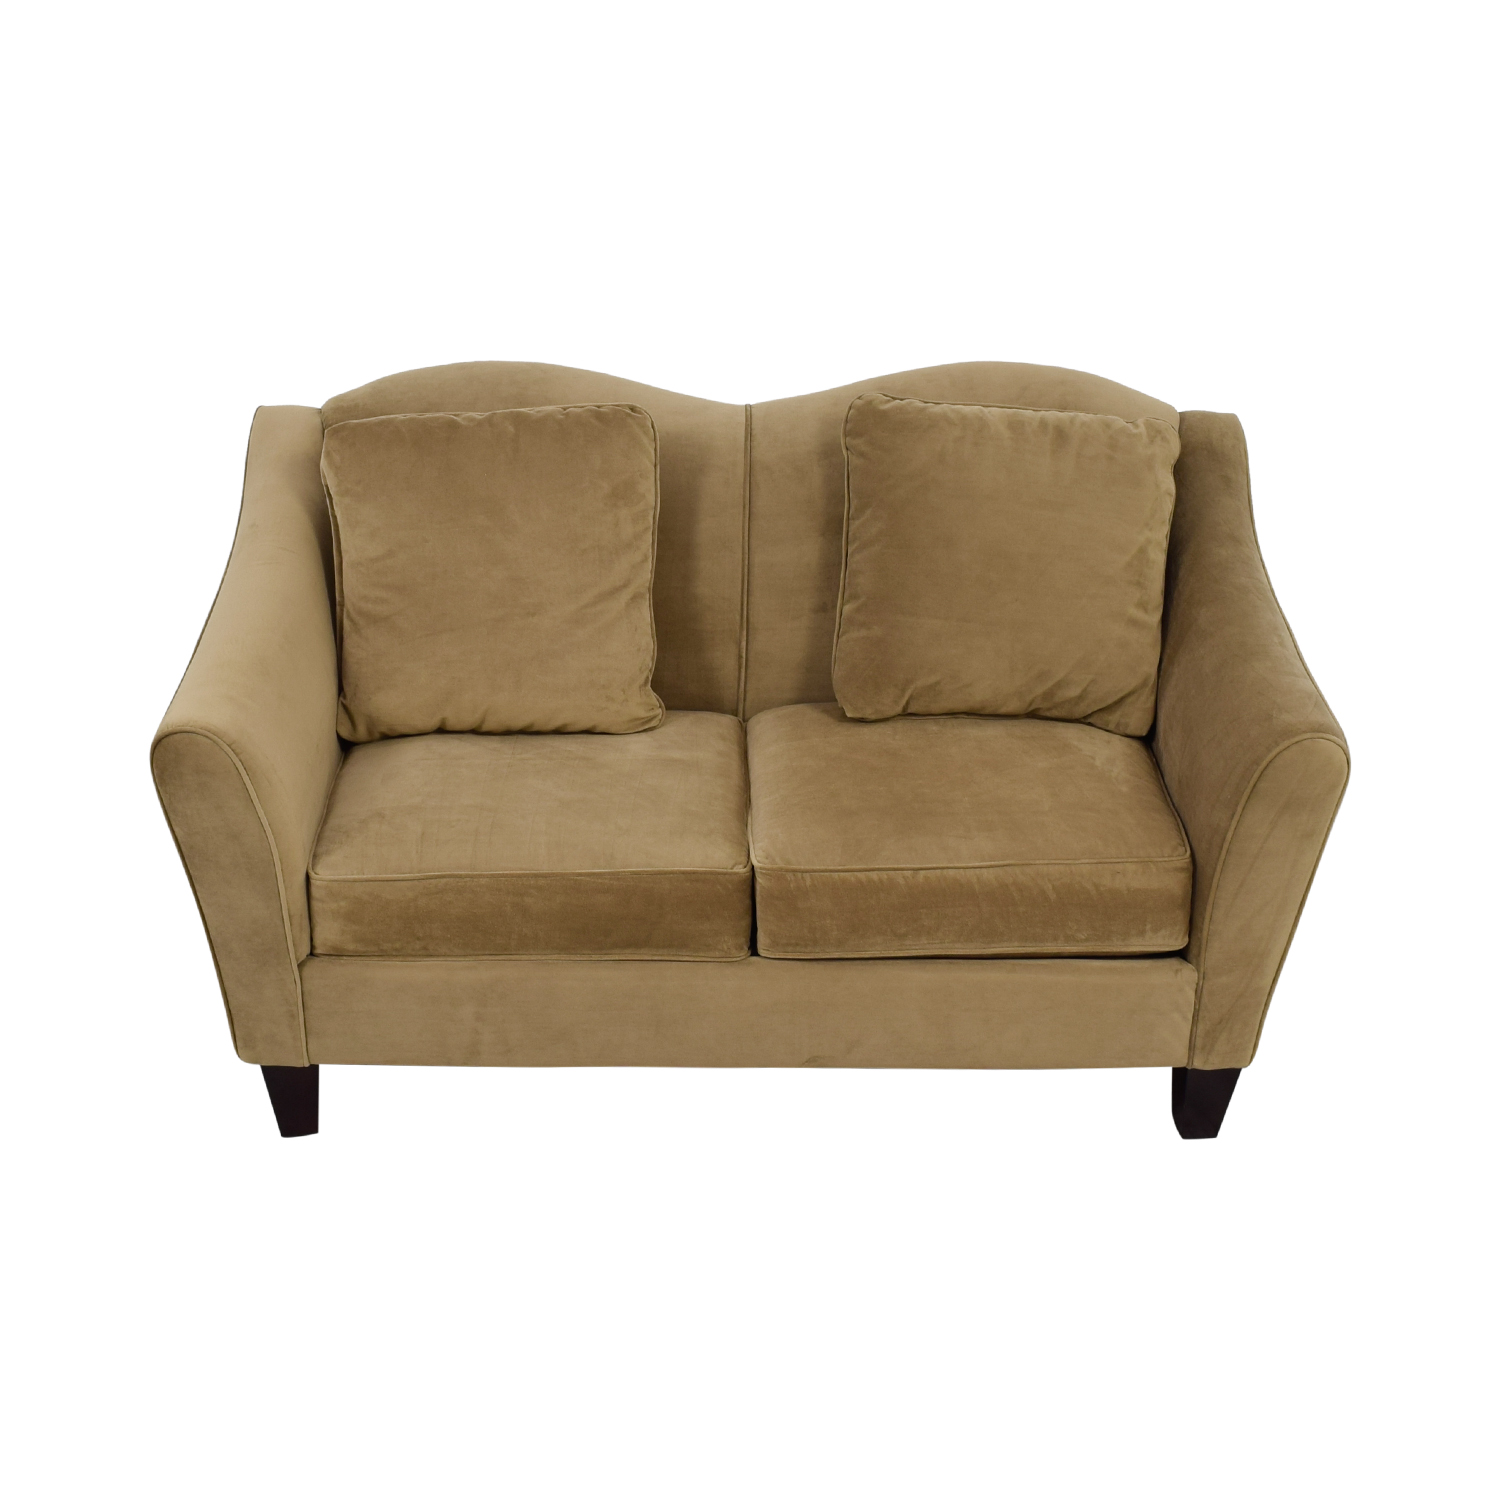 Raymour & Flanigan Raymour & Flanigan Beige Two-Cushion Loveseat for sale